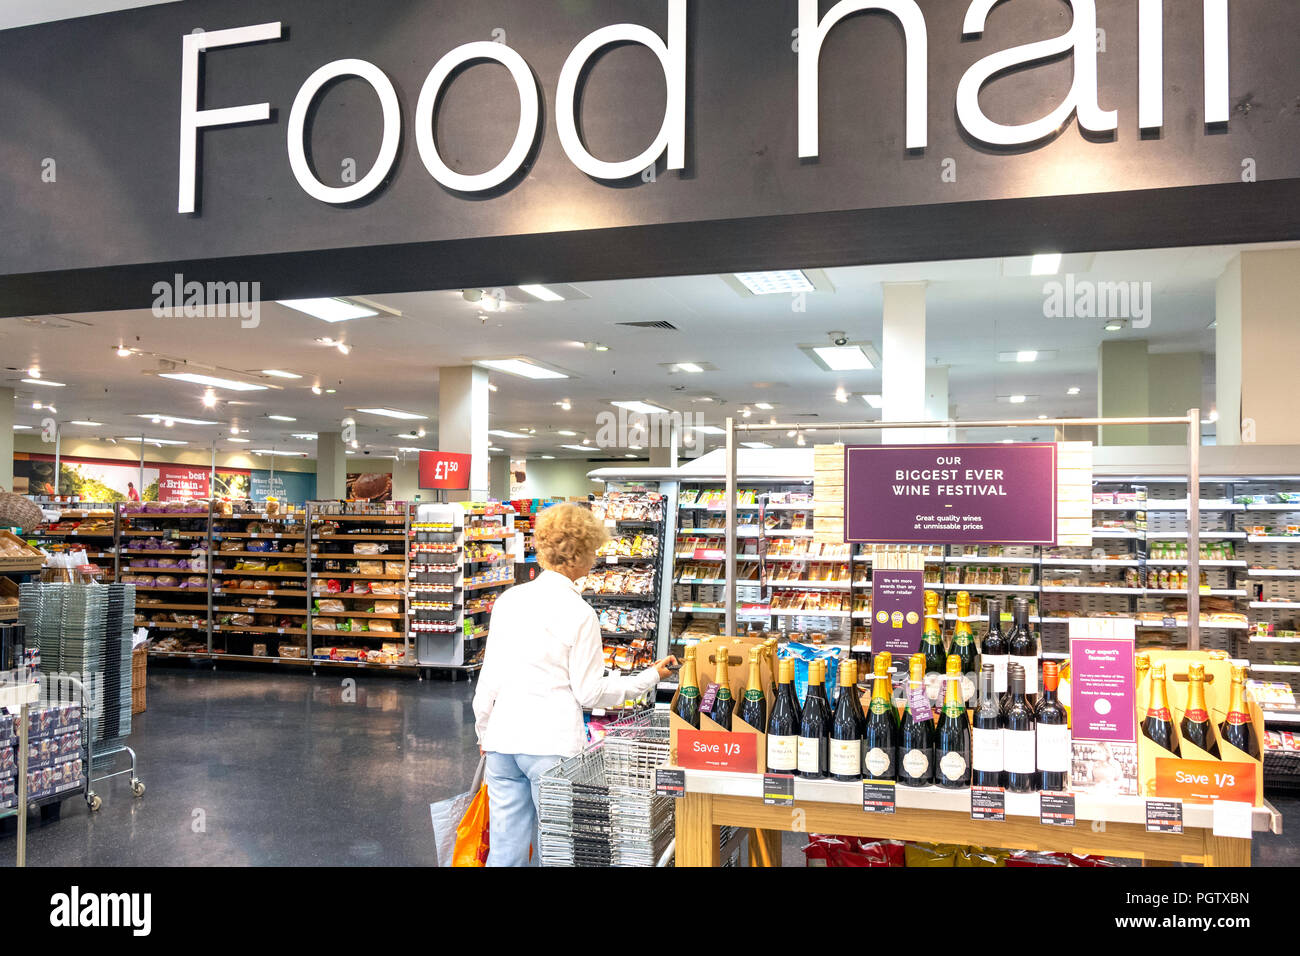 46c26708e1 Interior of Food Hall inside Marks & Spencers department store, Elmsleigh  Centre, High Street